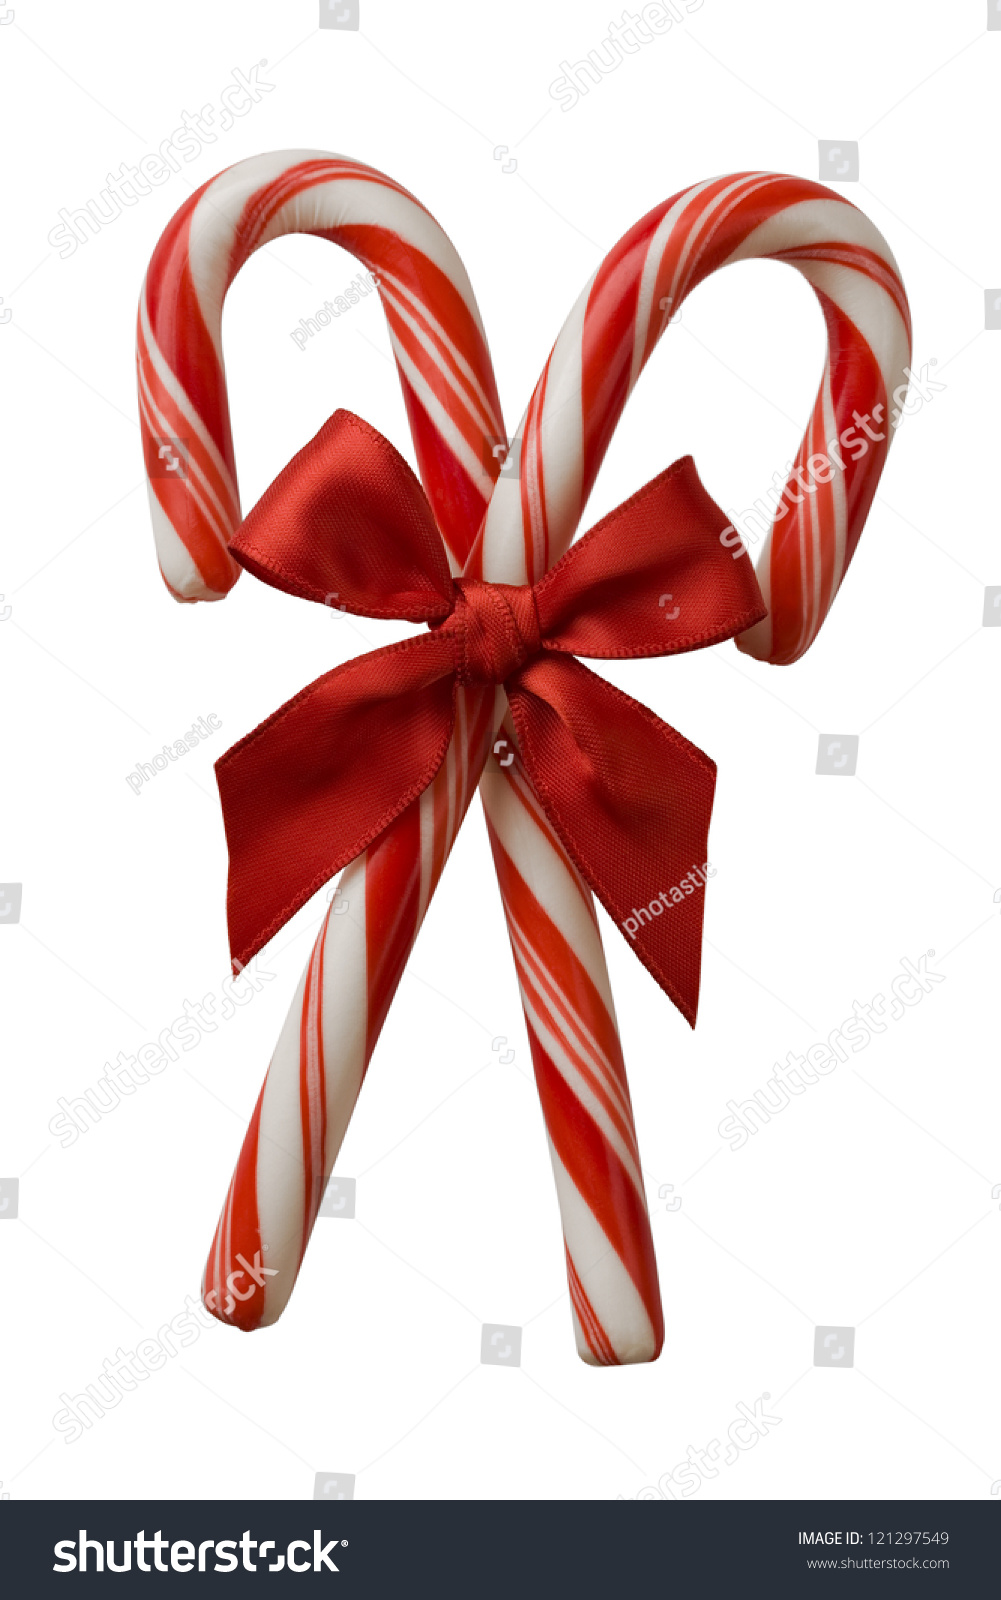 three striped candy canes read